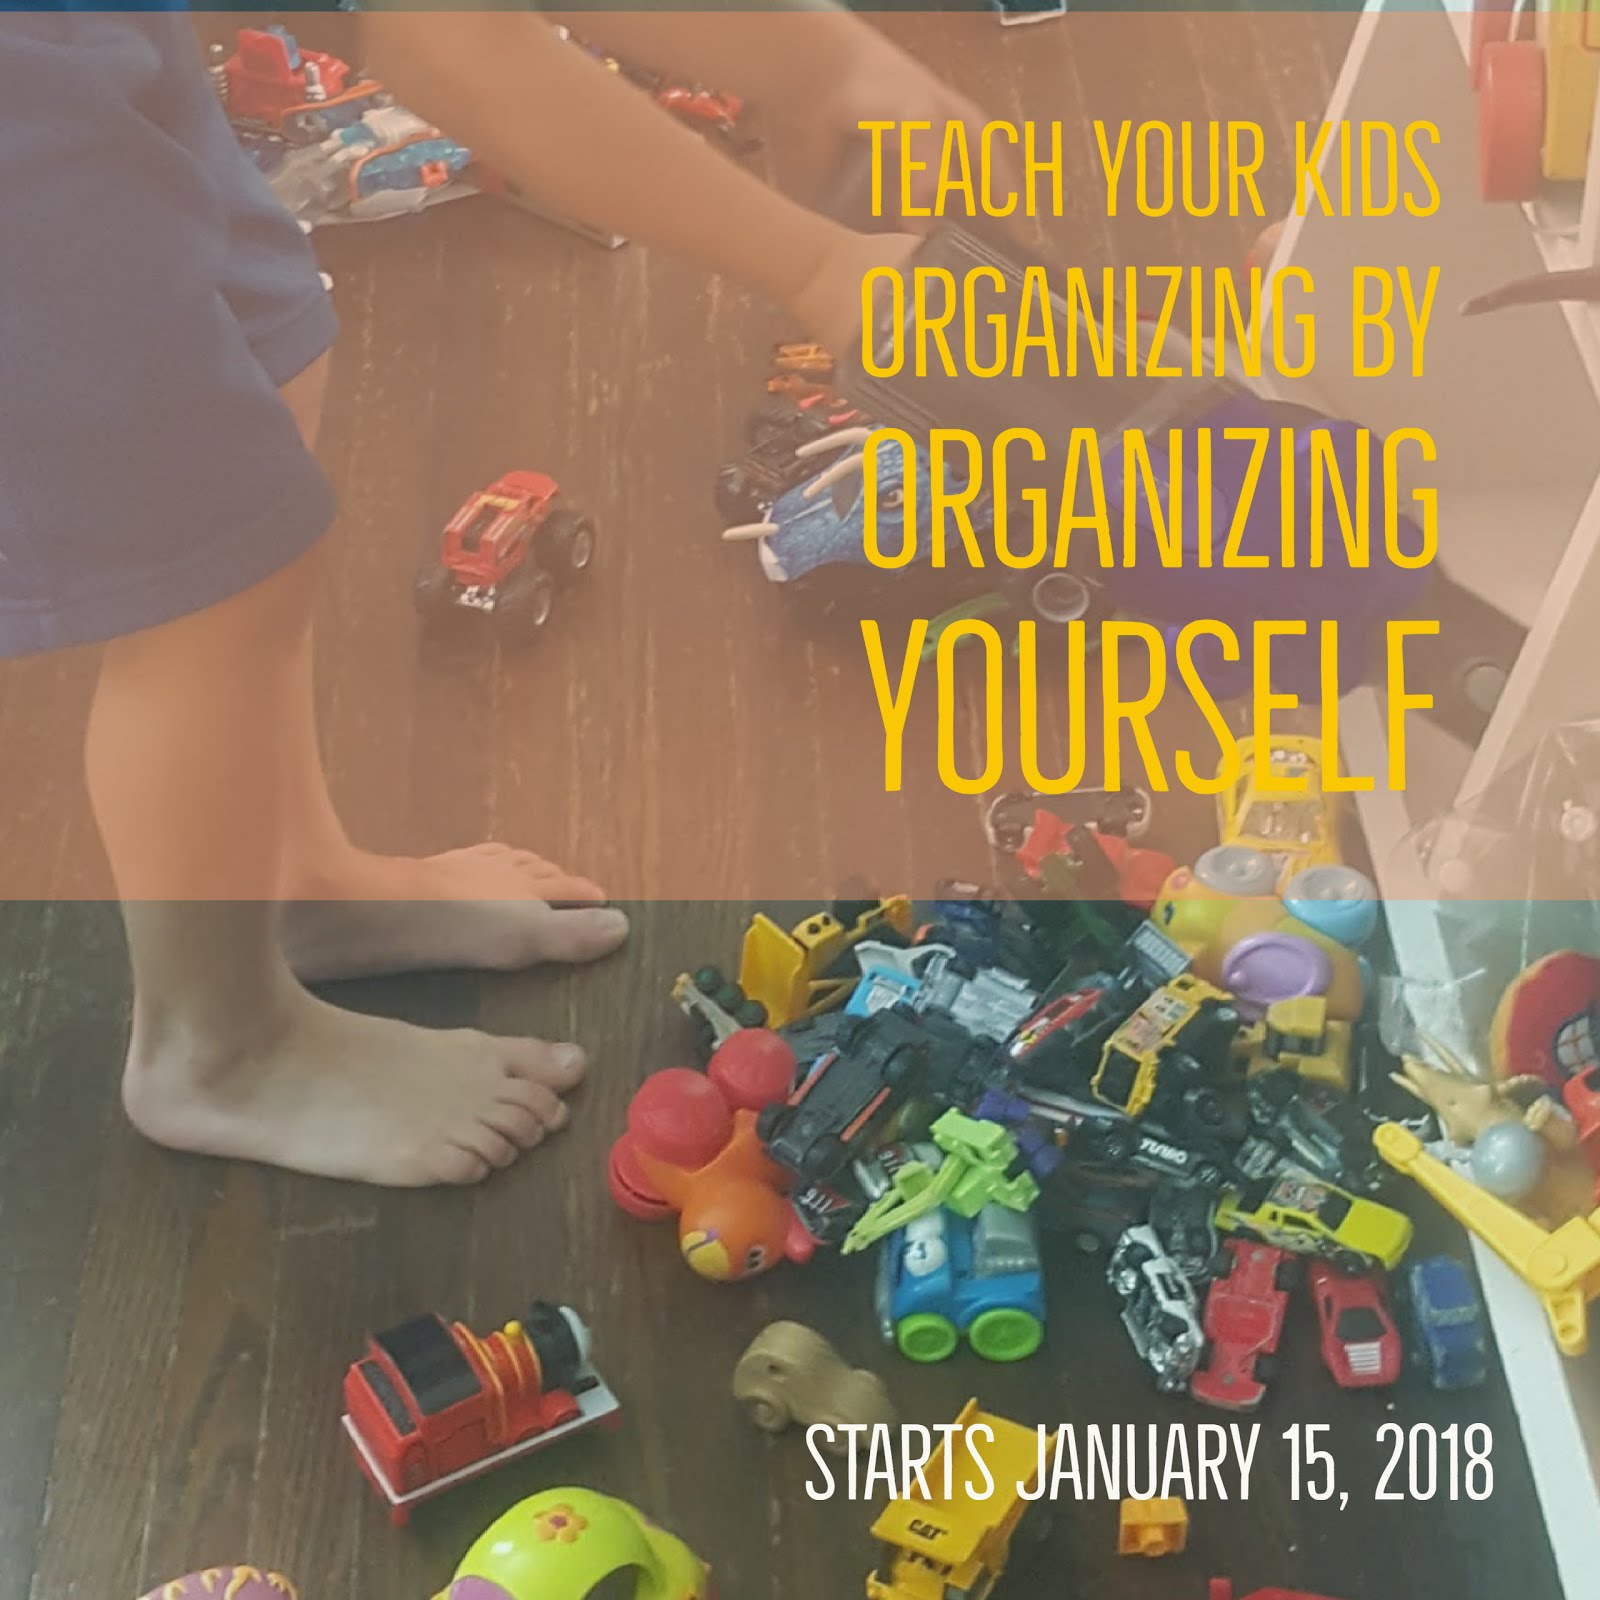 Upcoming Organizing Class